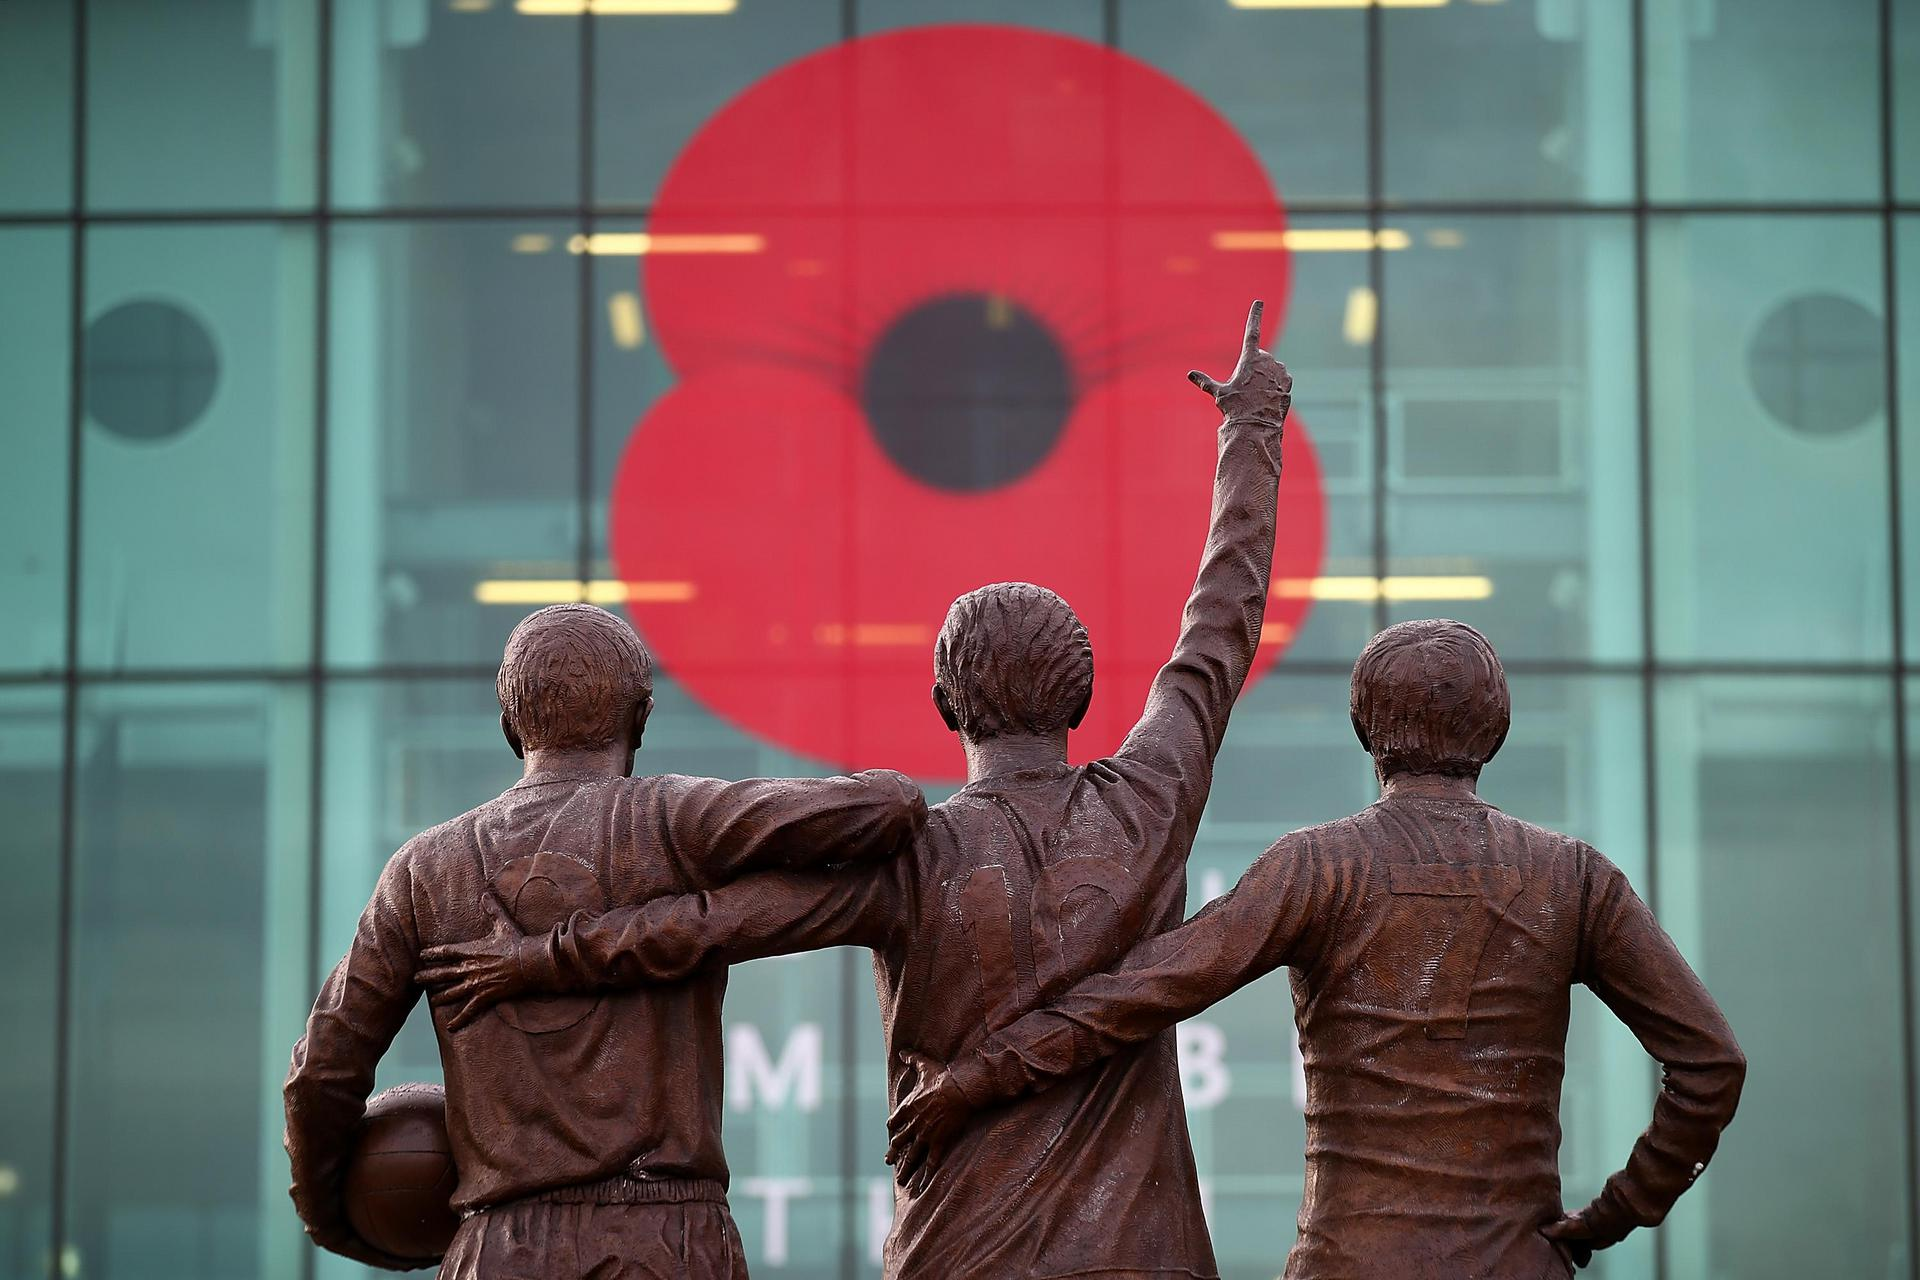 Poppy tribute for Remembrance on the East Stand window at Old Trafford